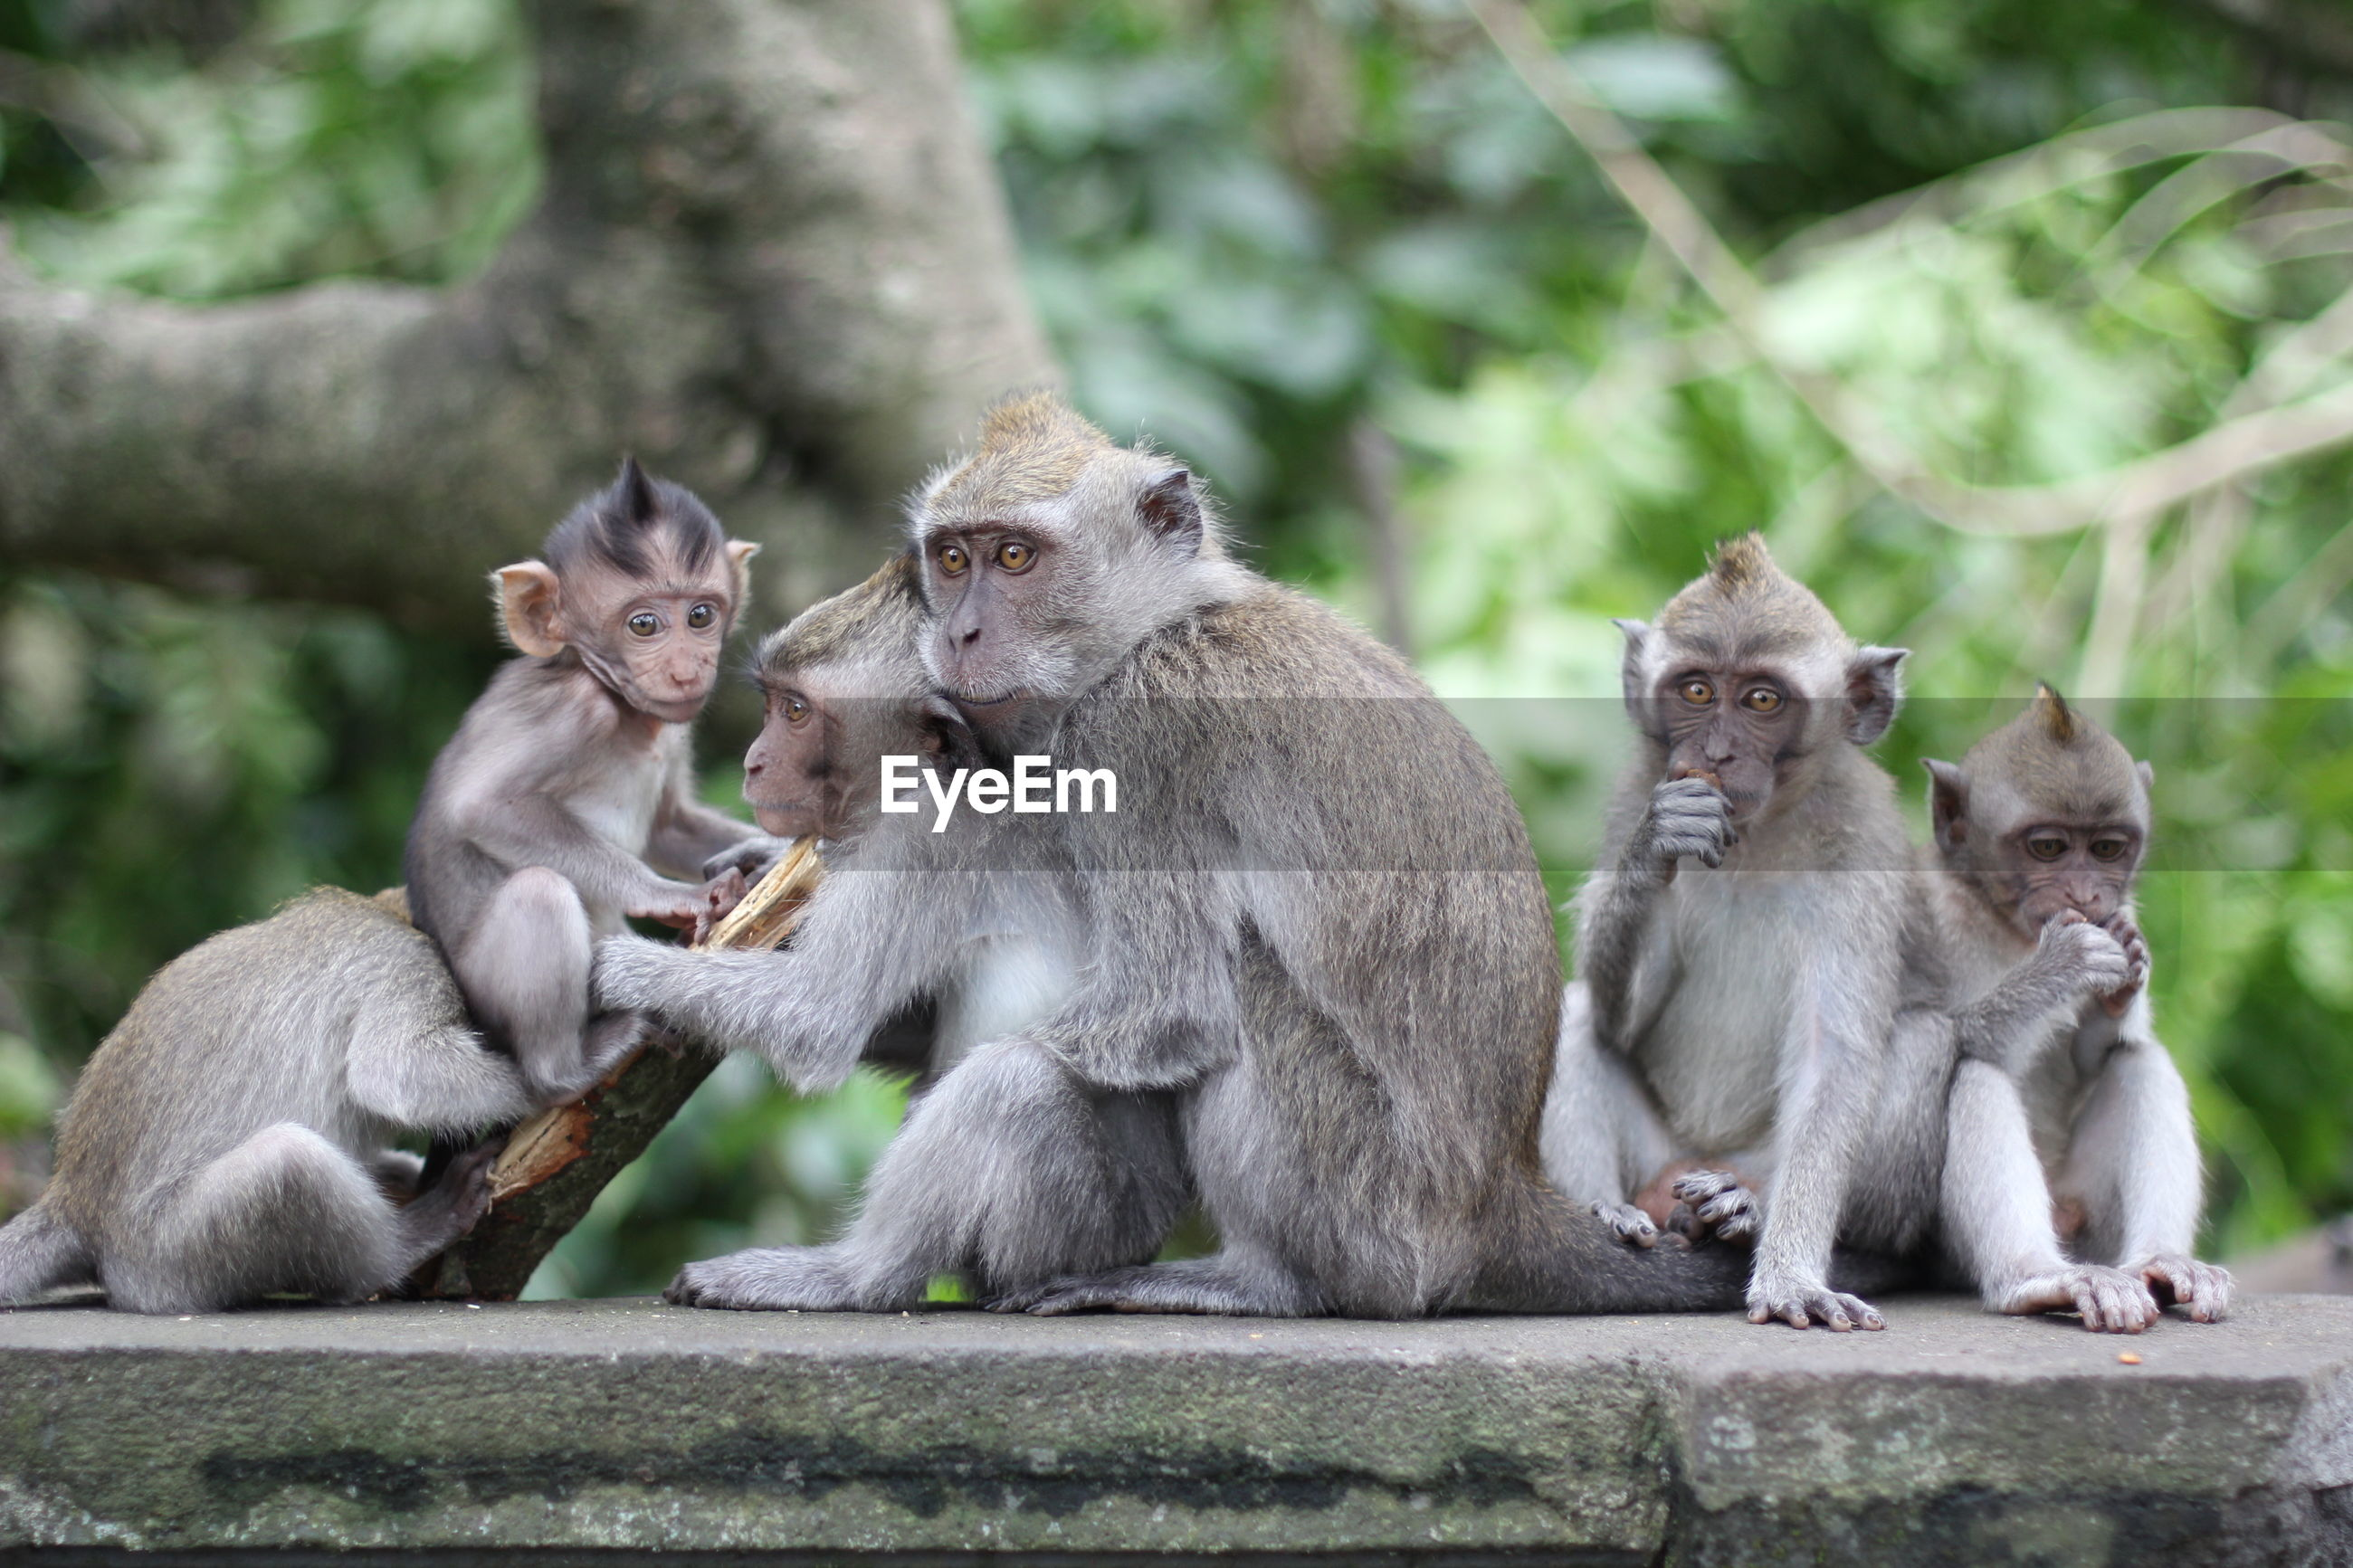 View of monkeys sitting on wall